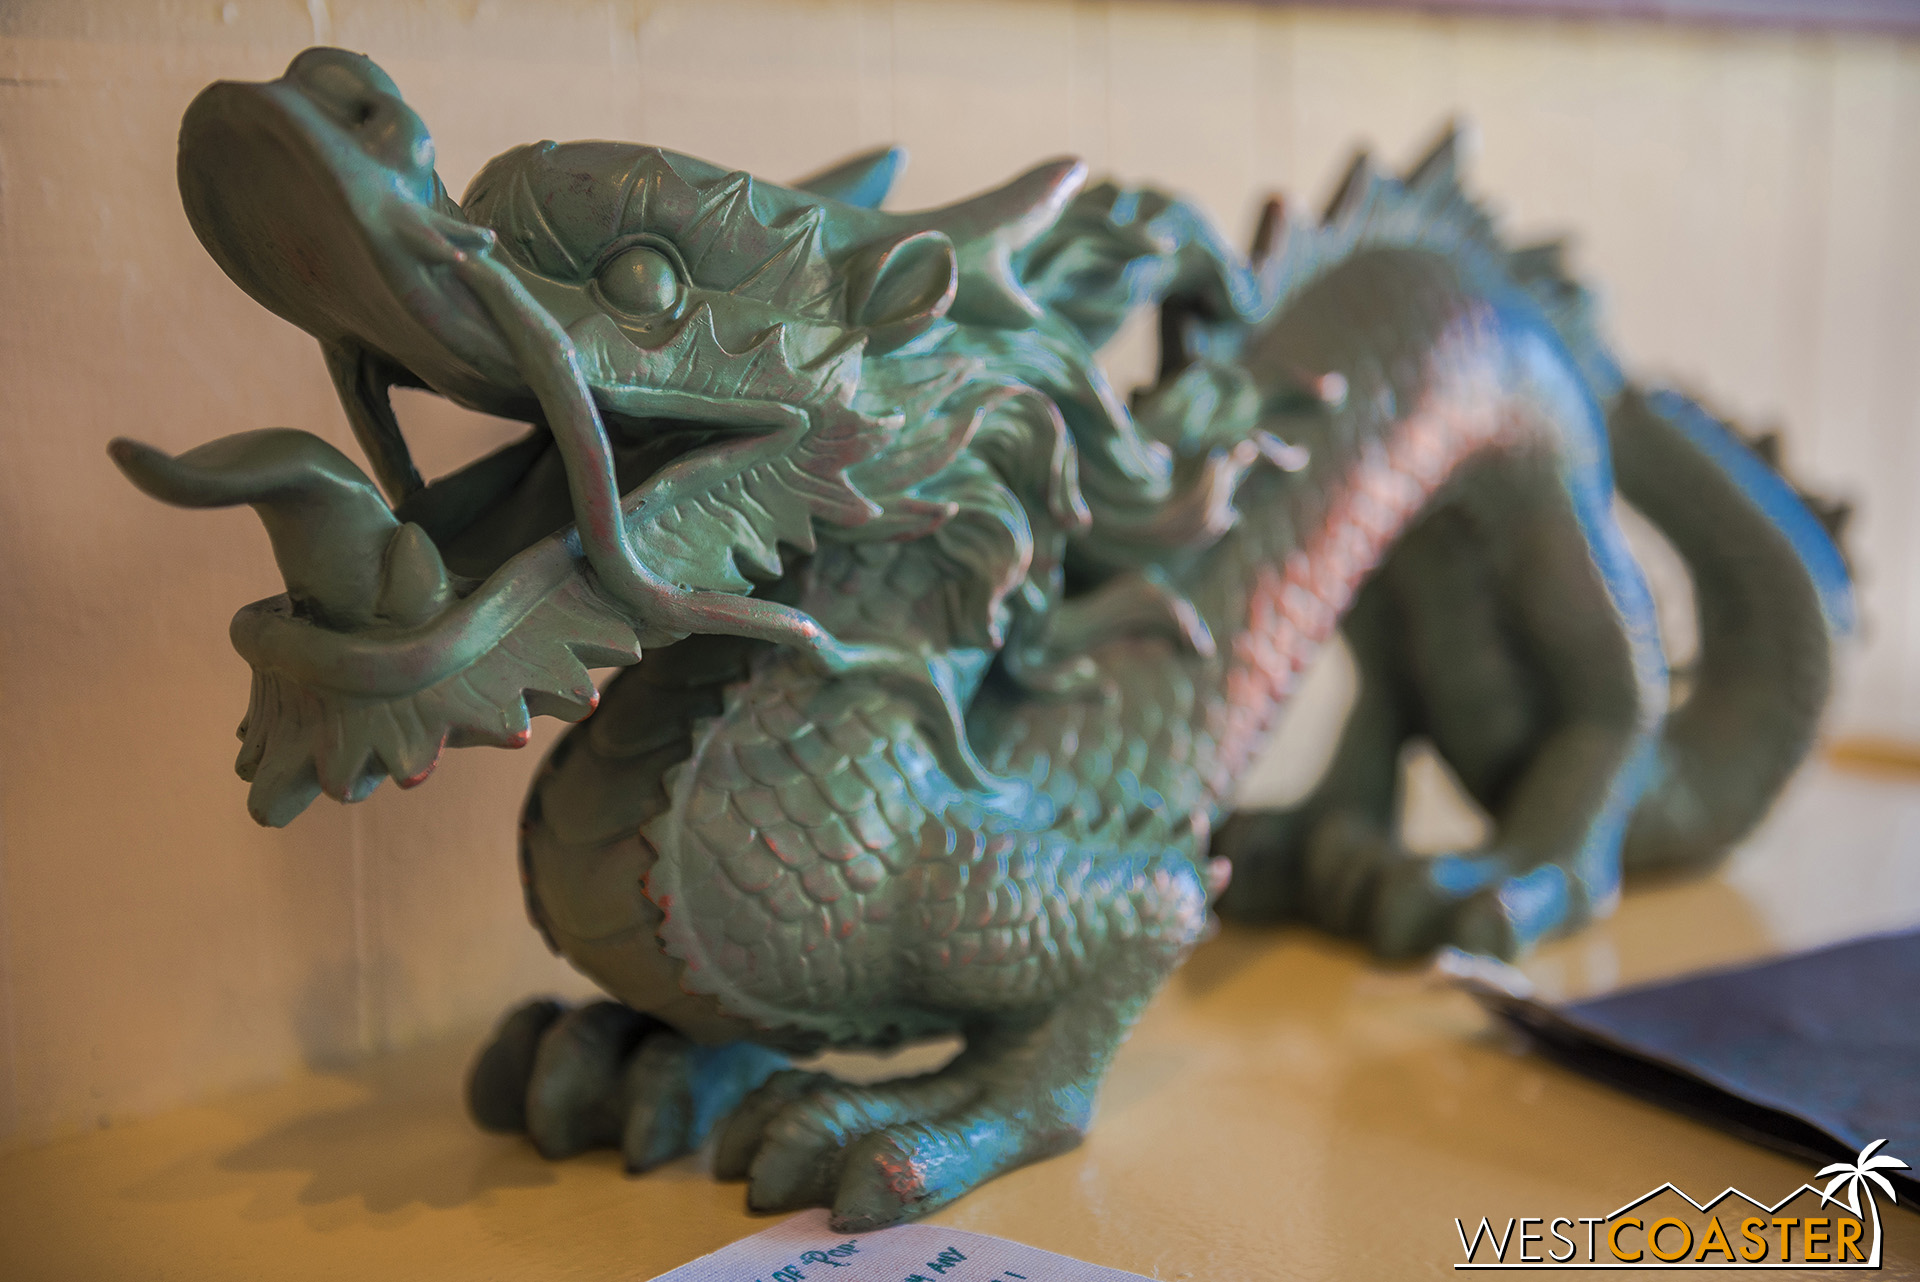 it's become a bit of a scavenger hunt to find out where to place the jade dragon, Pop Wing Lee's most prized possession.